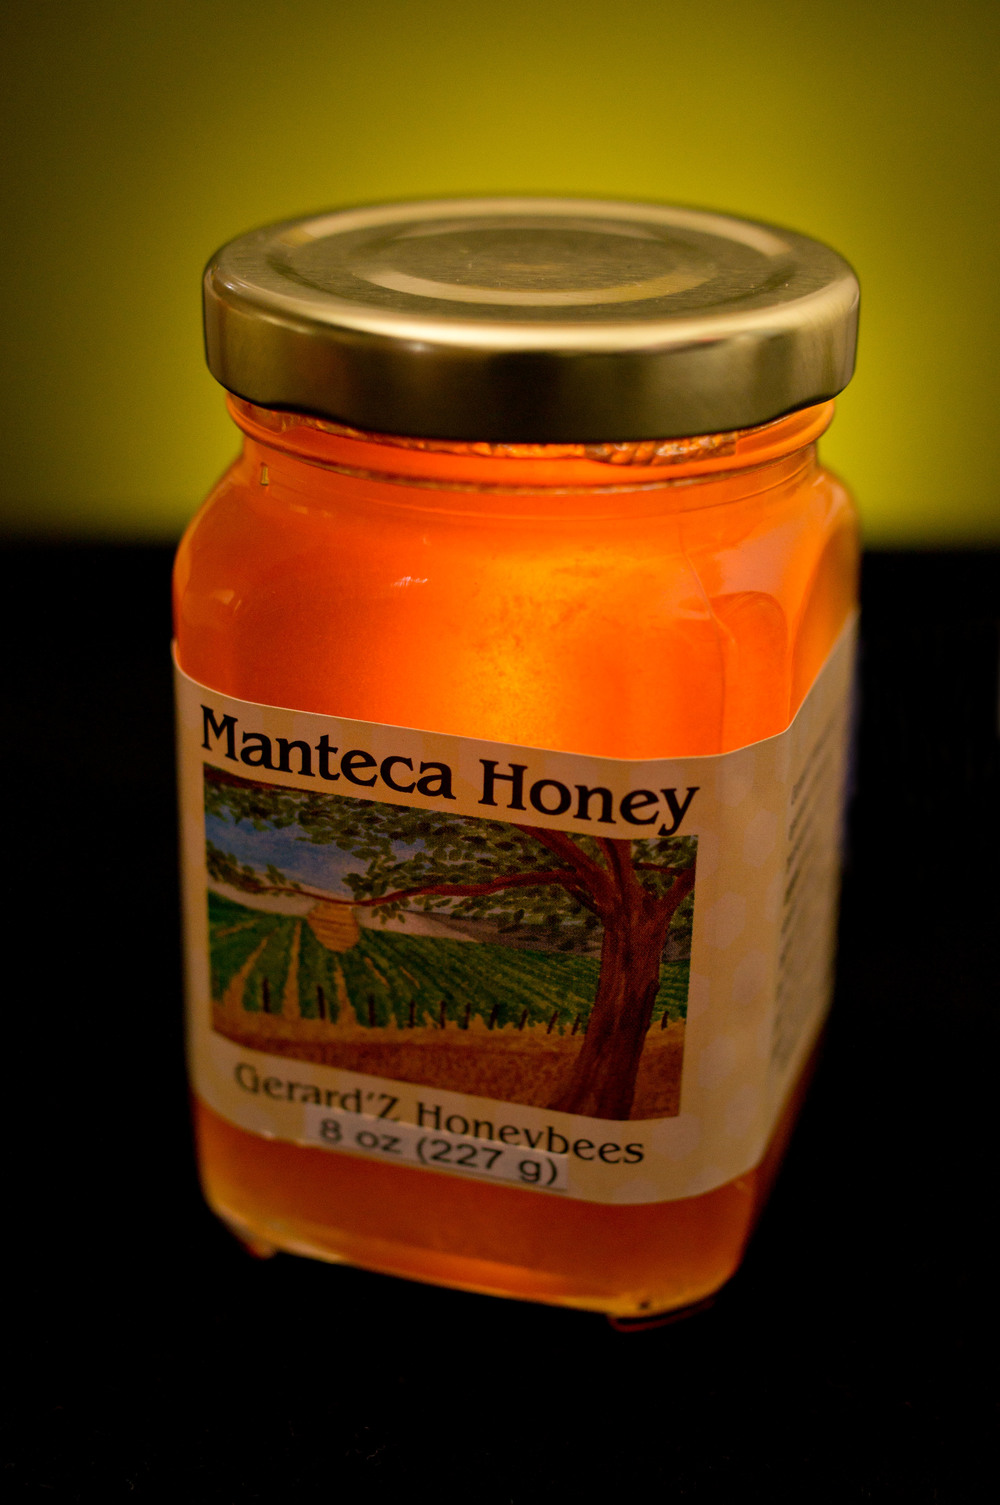 MantecaHoney1.jpg